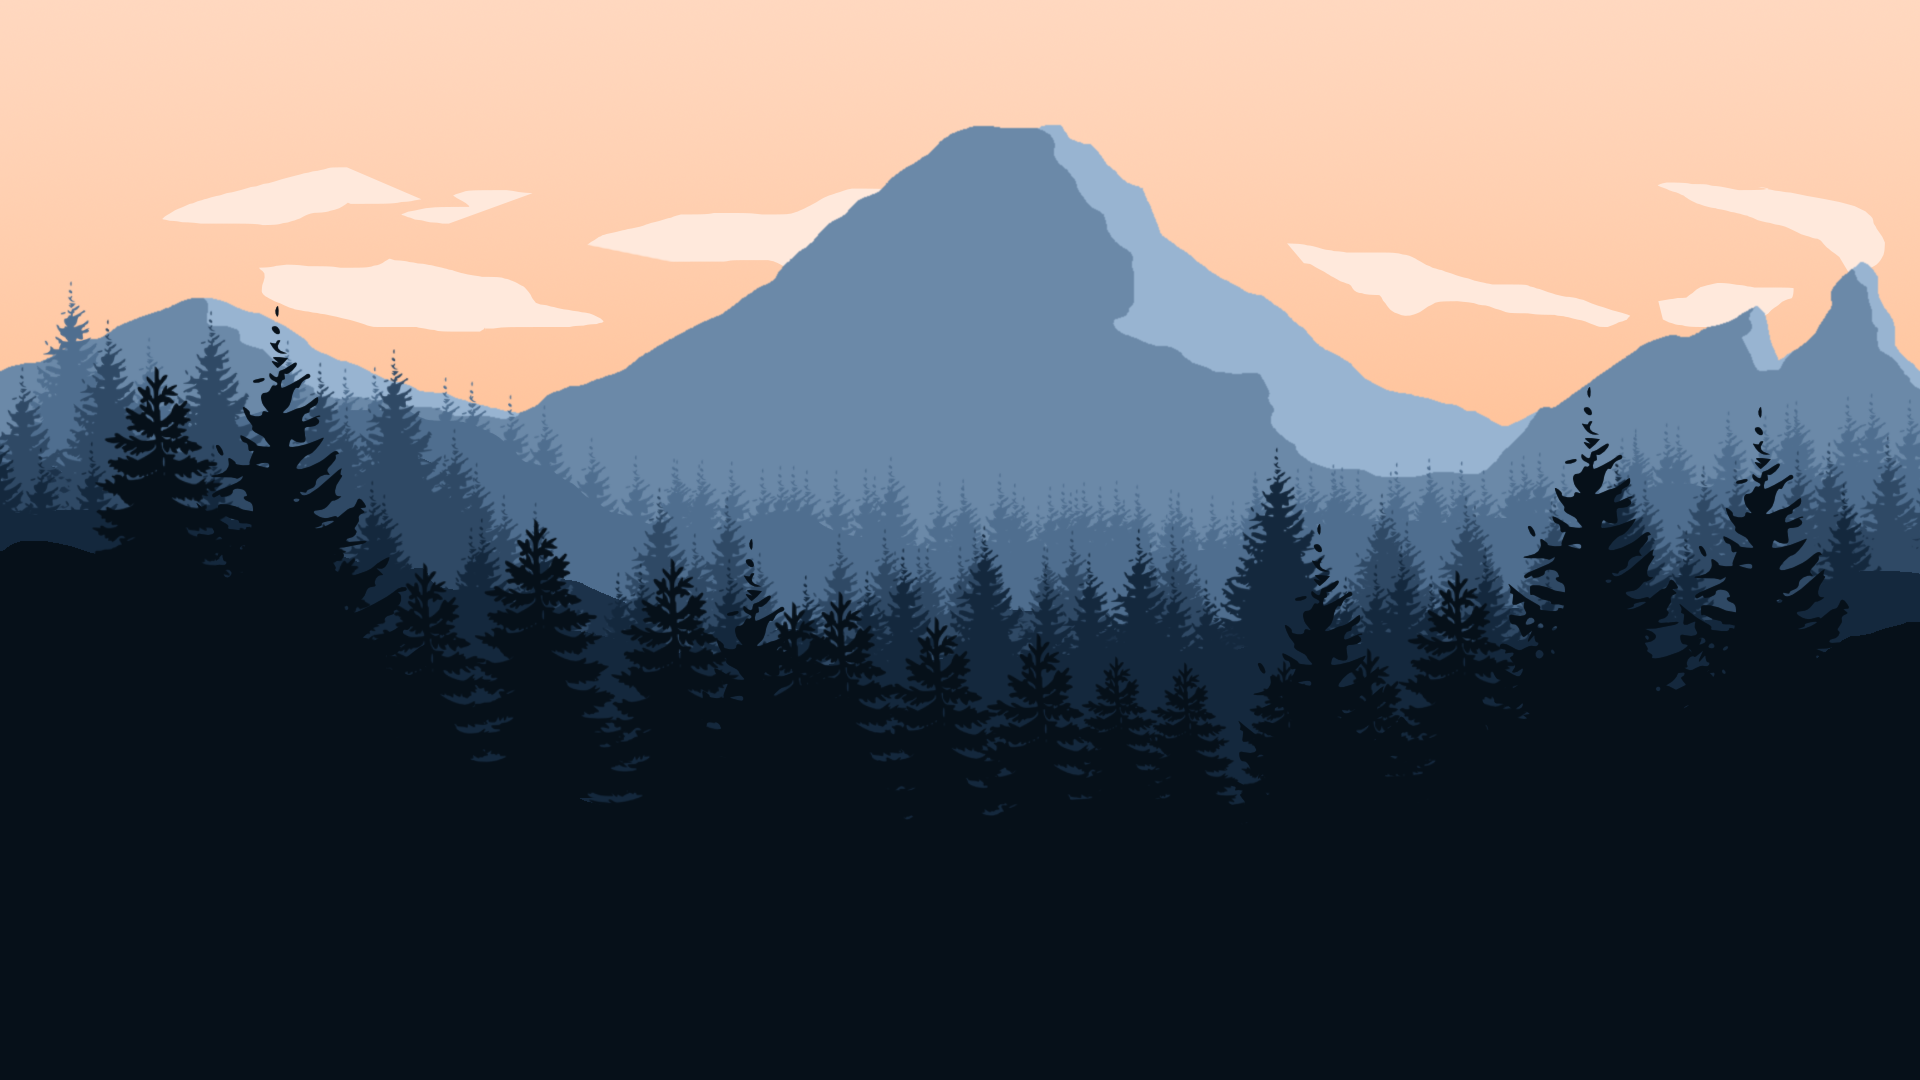 Background Wallpaper: 23 HD Firewatch Game Wallpapers